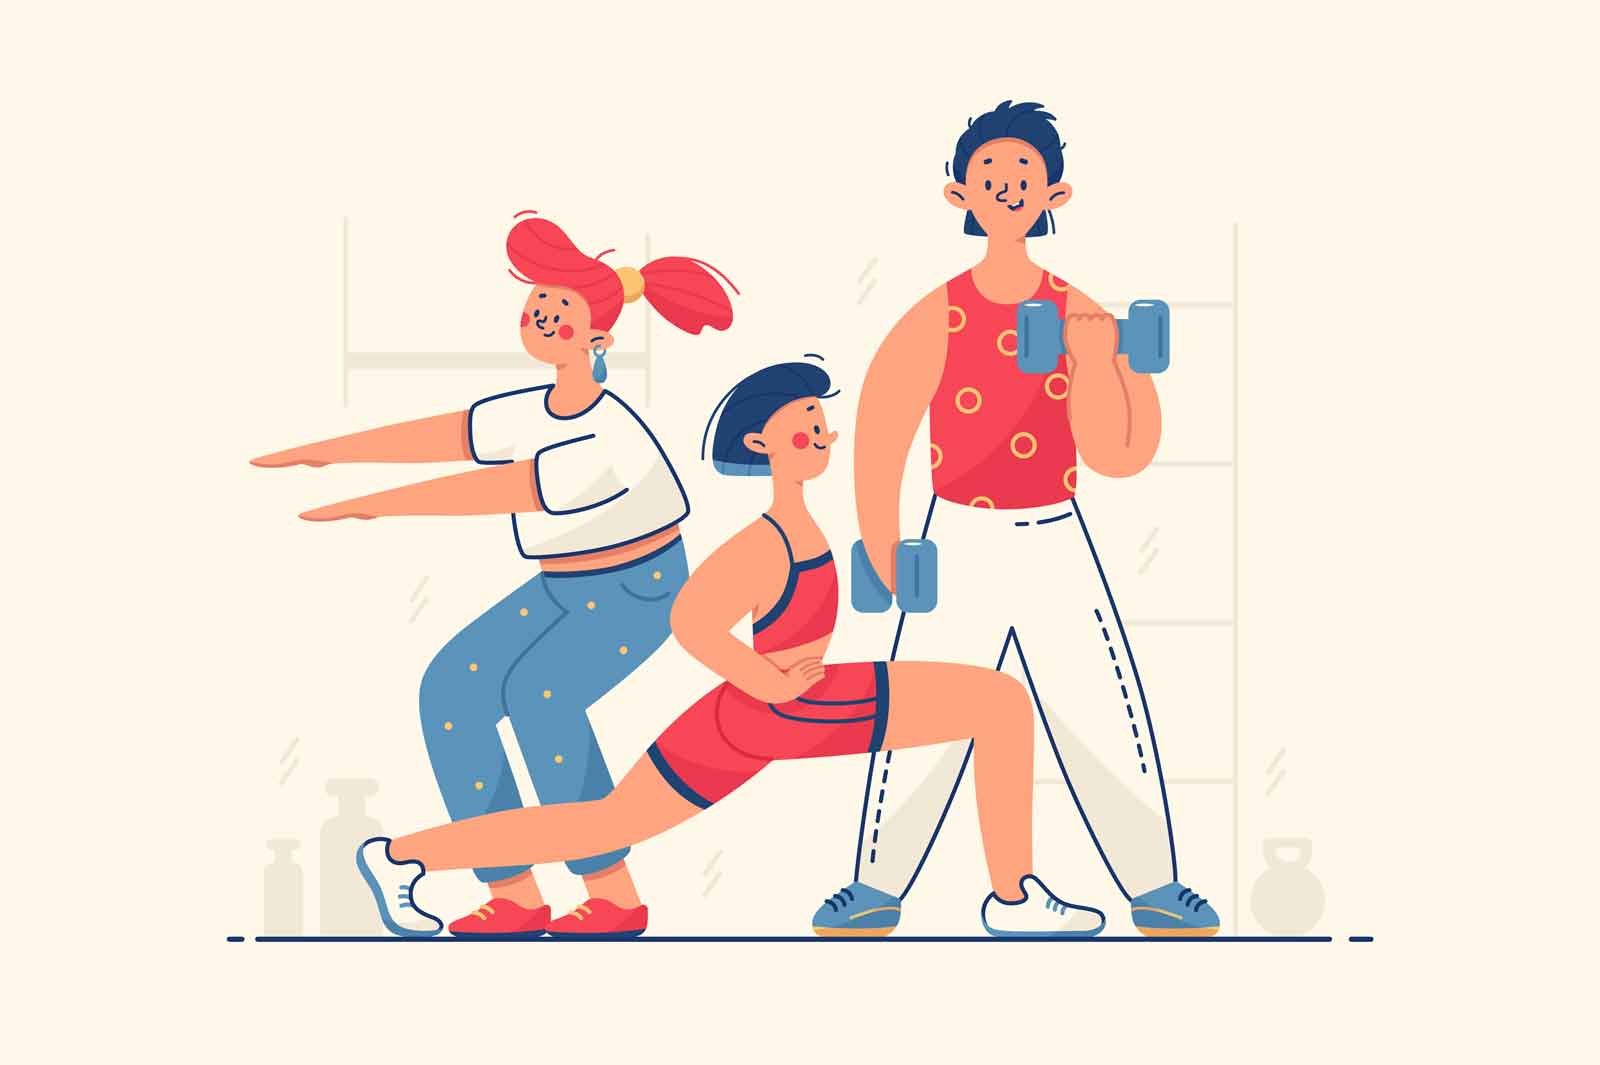 People work on body vector illustration. Woman doing squats, man lifting dumbbells flat style. Friends workout together. Gym, sport, active lifestyle concept. Isolated on beige background